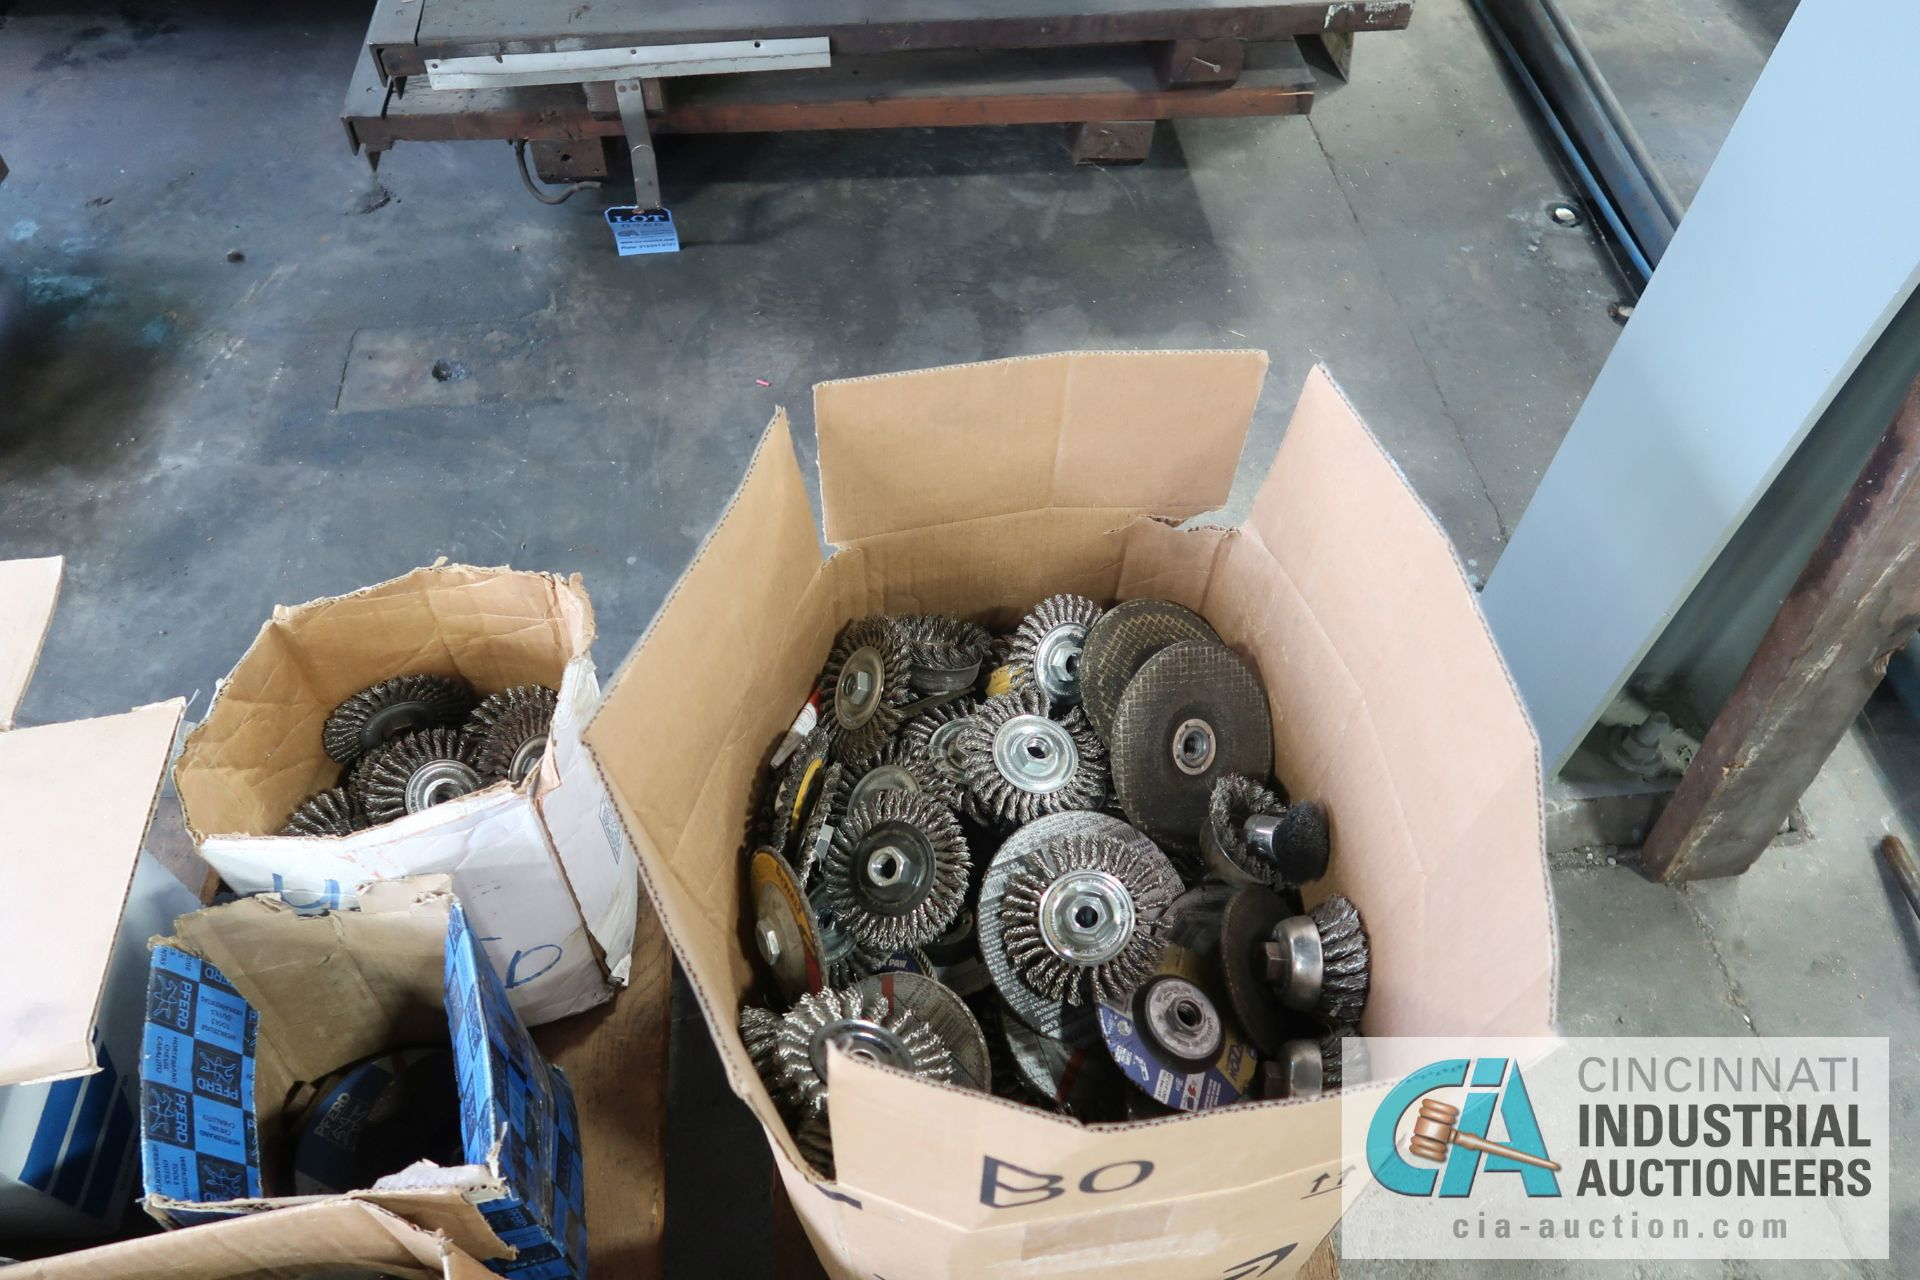 """SKID MISCELLANEOUS NEW AND USED 9"""" AND 6"""" ABRASIVE GRINDING WHEELS WITH 4"""" WIRE WHEELS - Image 3 of 5"""